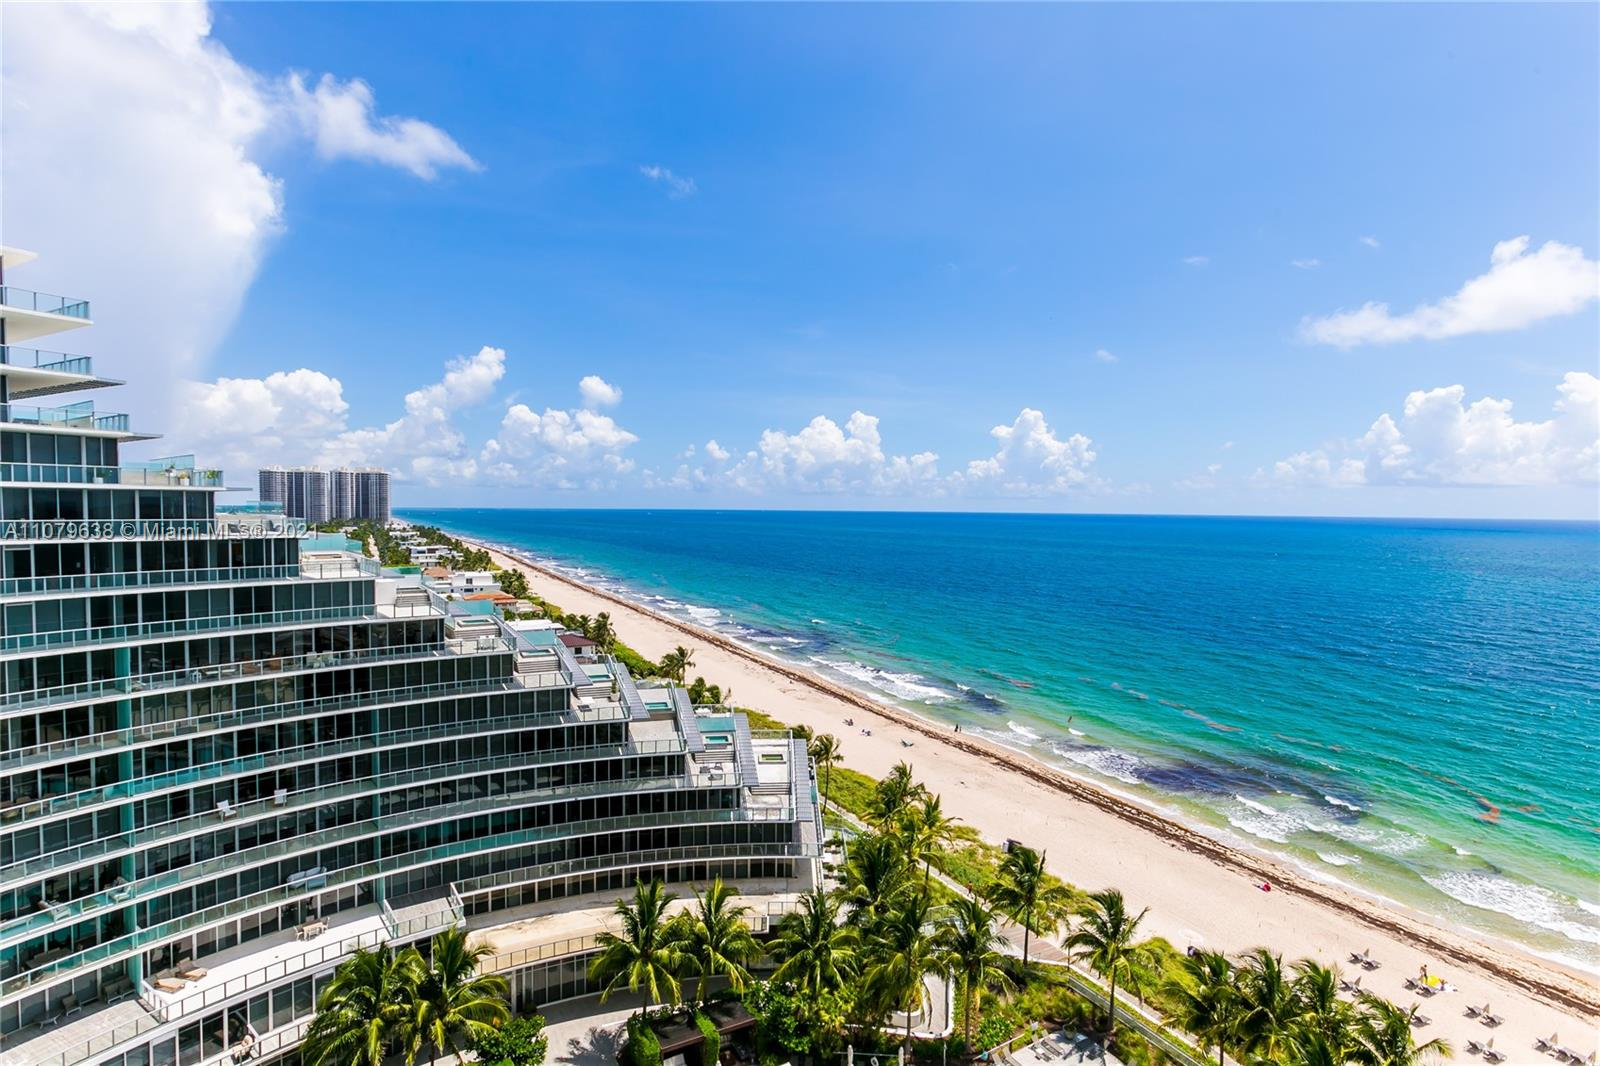 Spectacular Luxury ocean view Modern Turn Key Condo  unit in the Auberge.  Resting directly on 450 linear feet of pristine beachfront in Fort Lauderdale, Auberge Beach Residences & Spa showcase its unique architecture and design.  This stunning flow through unit offers both city and ocean views.  Full service condominium. Offered fully furnished by Interiors by Steven G. Barely lived in, like new. A Must see unit!!! (One Exclusive right to use storage unit)